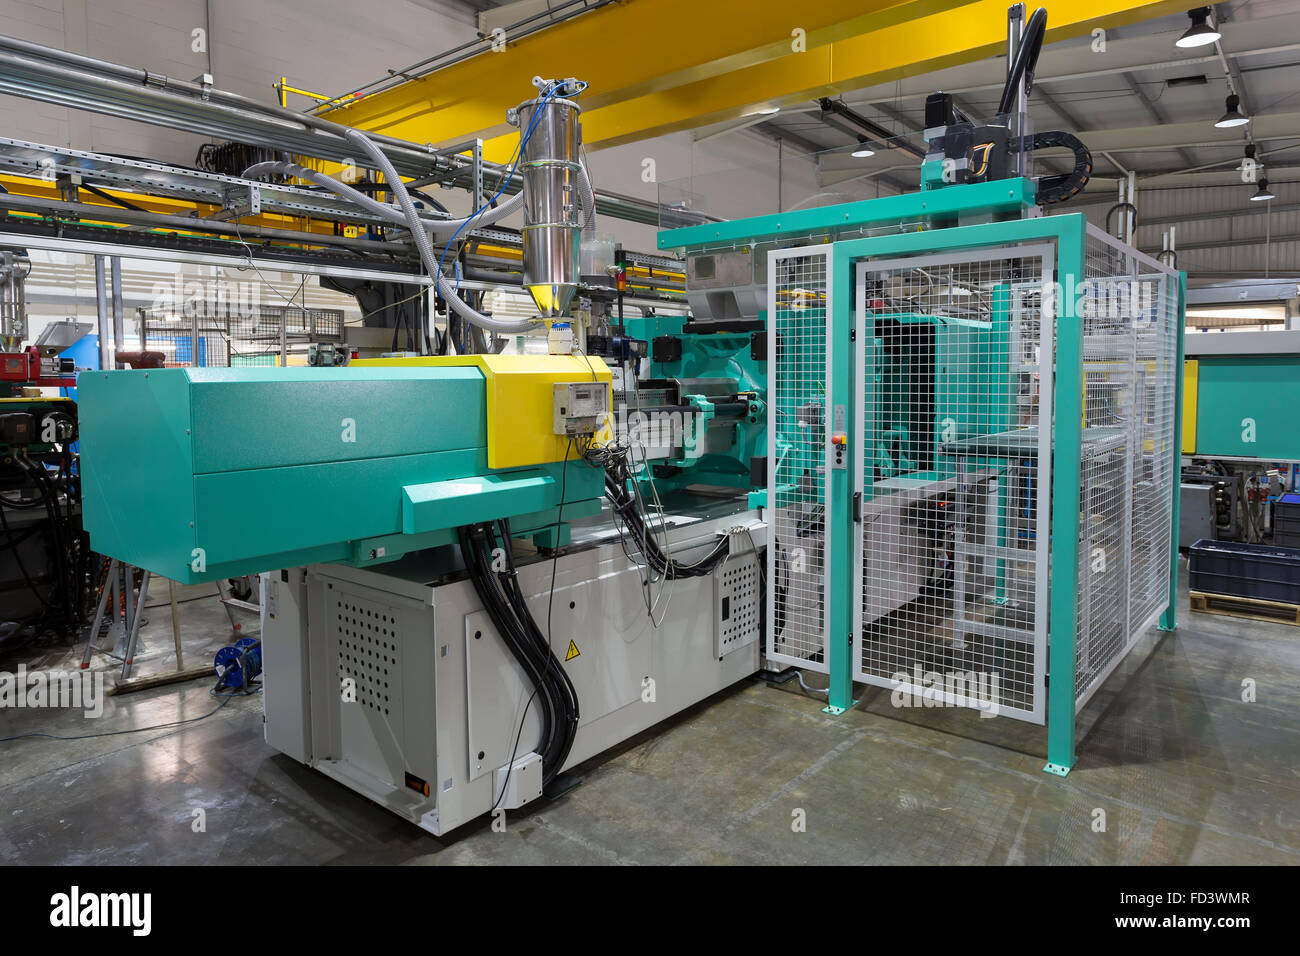 Plastic Injection Moulding Machine - Stock Image